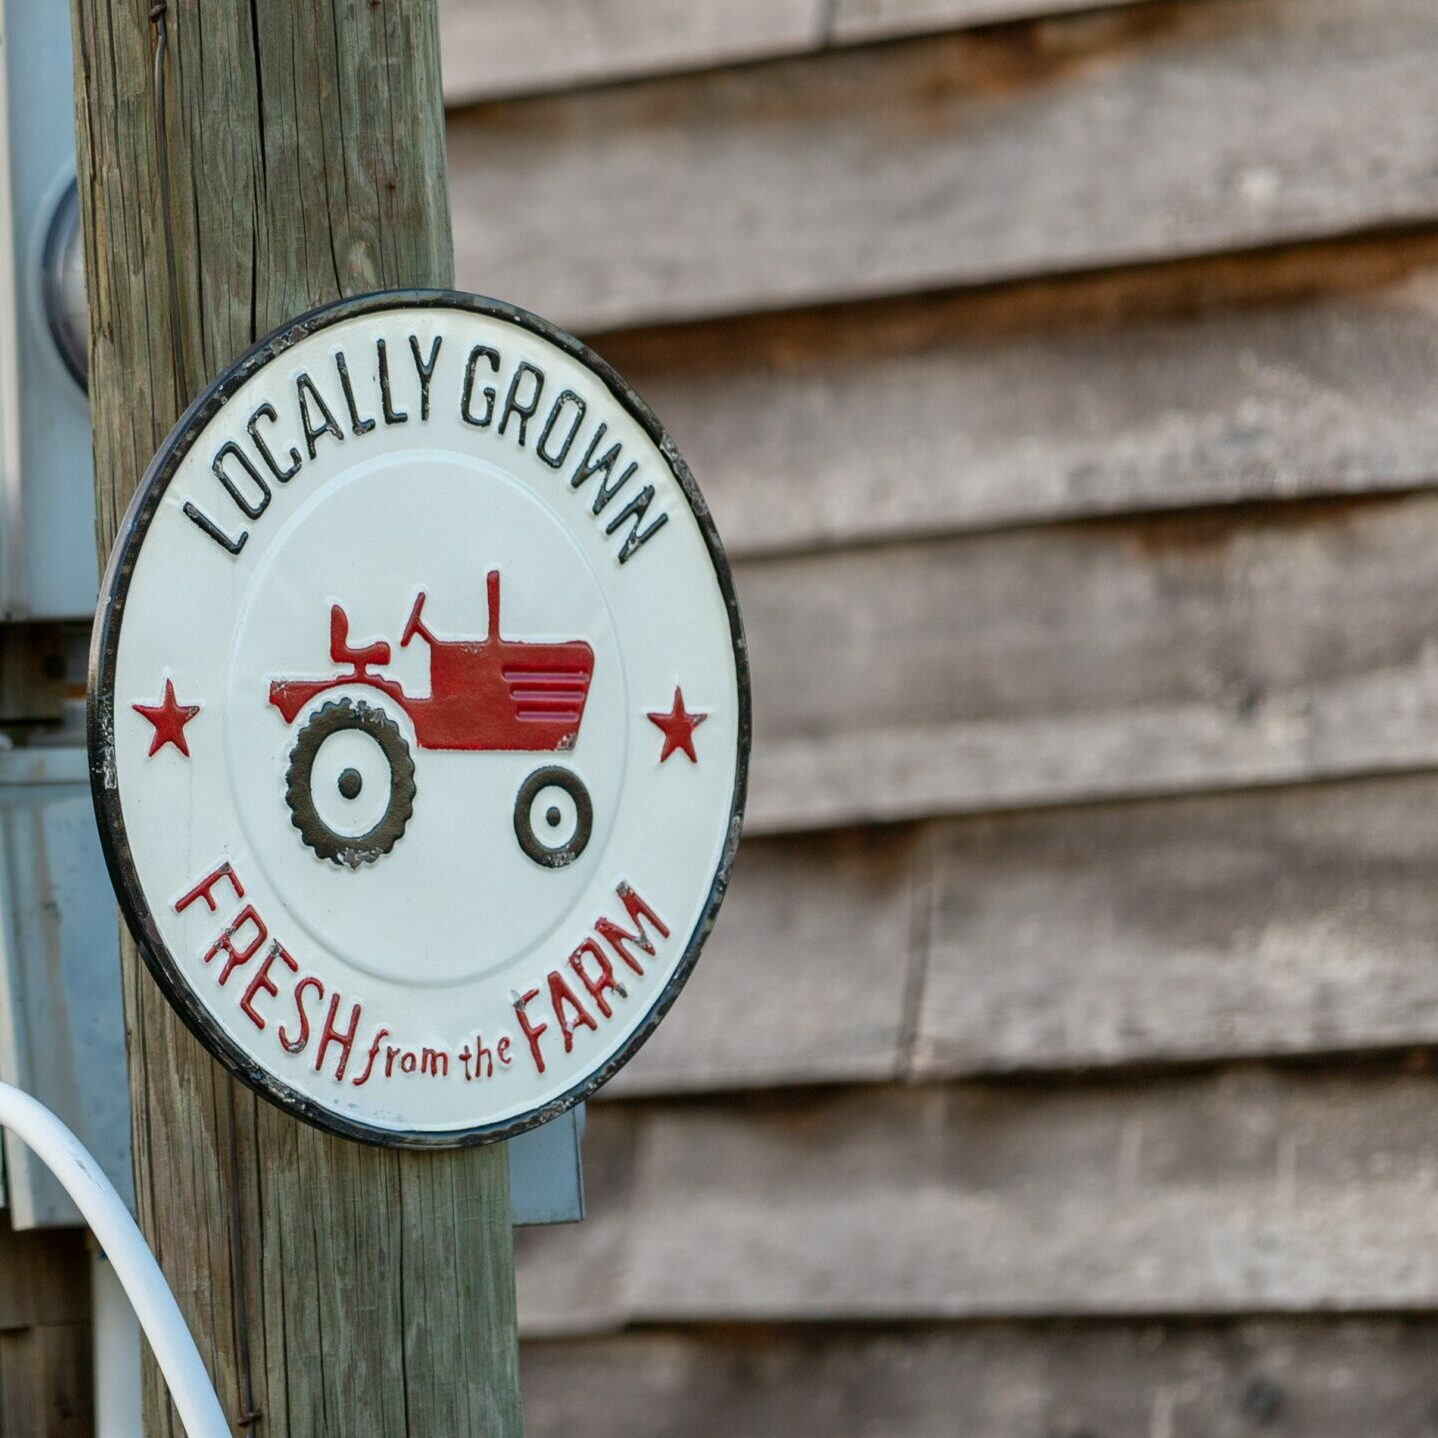 locally grown fresh from the farm sign